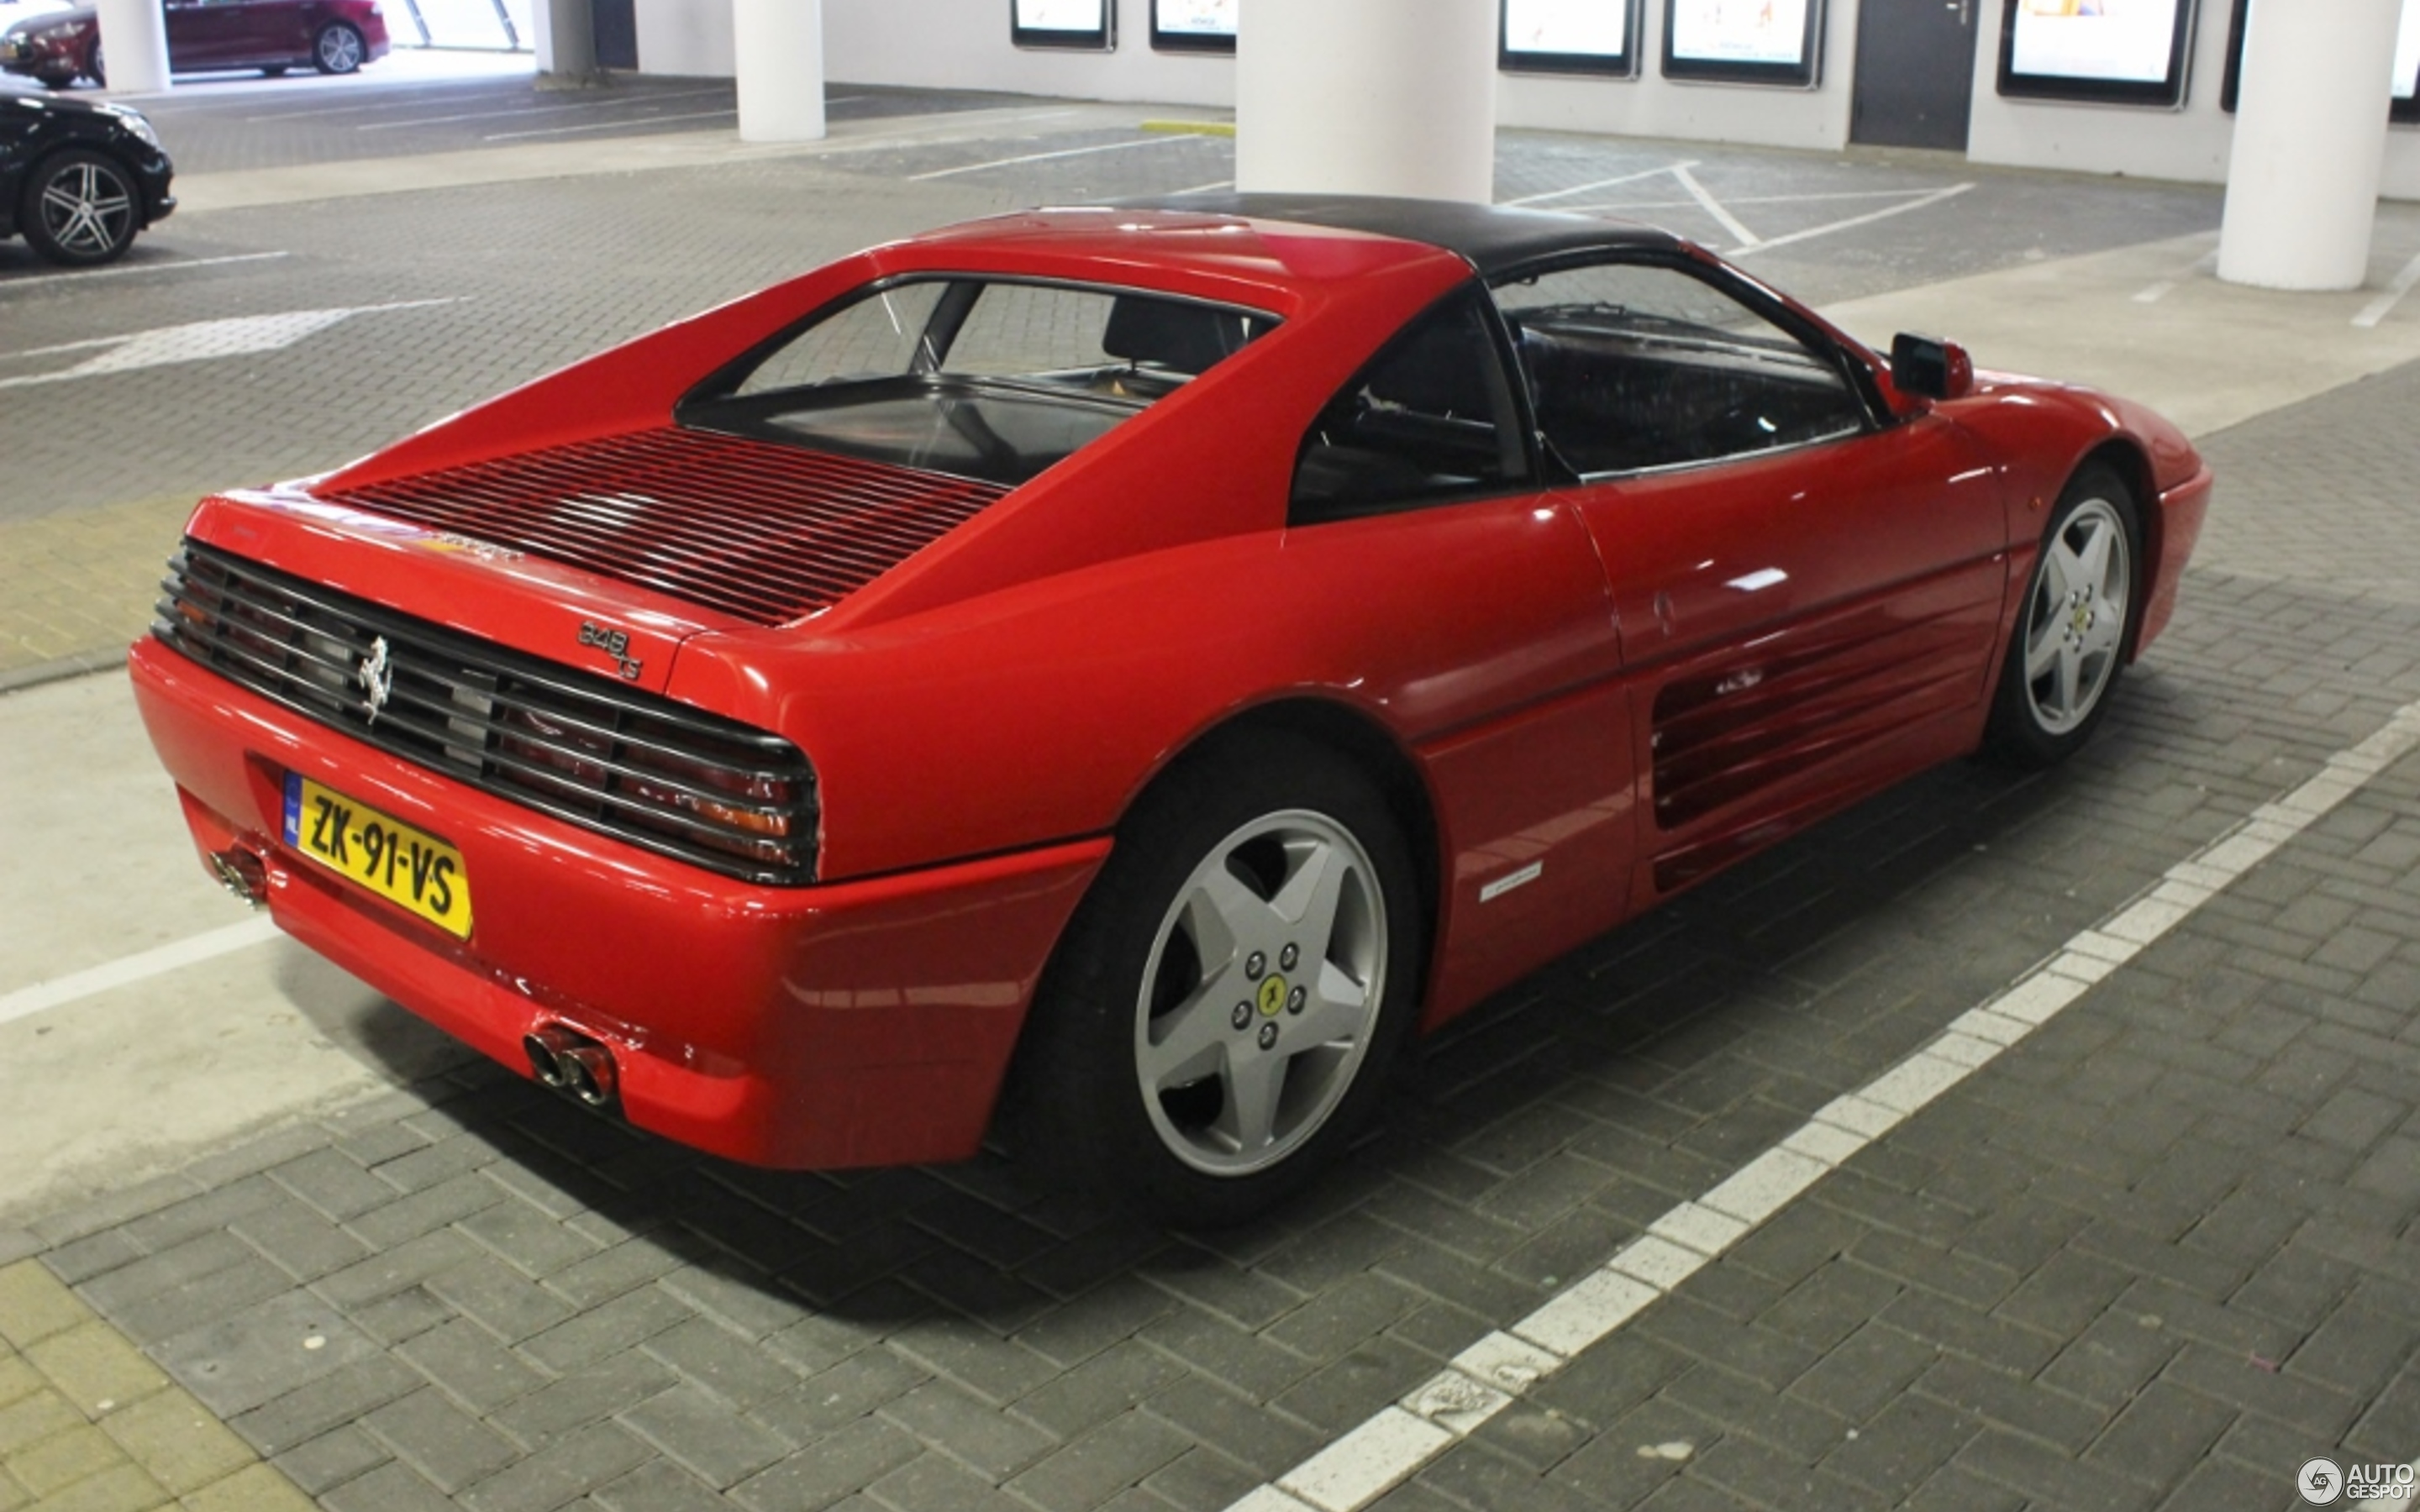 Ferrari 348 TS - 19 September 2015 - Auspot